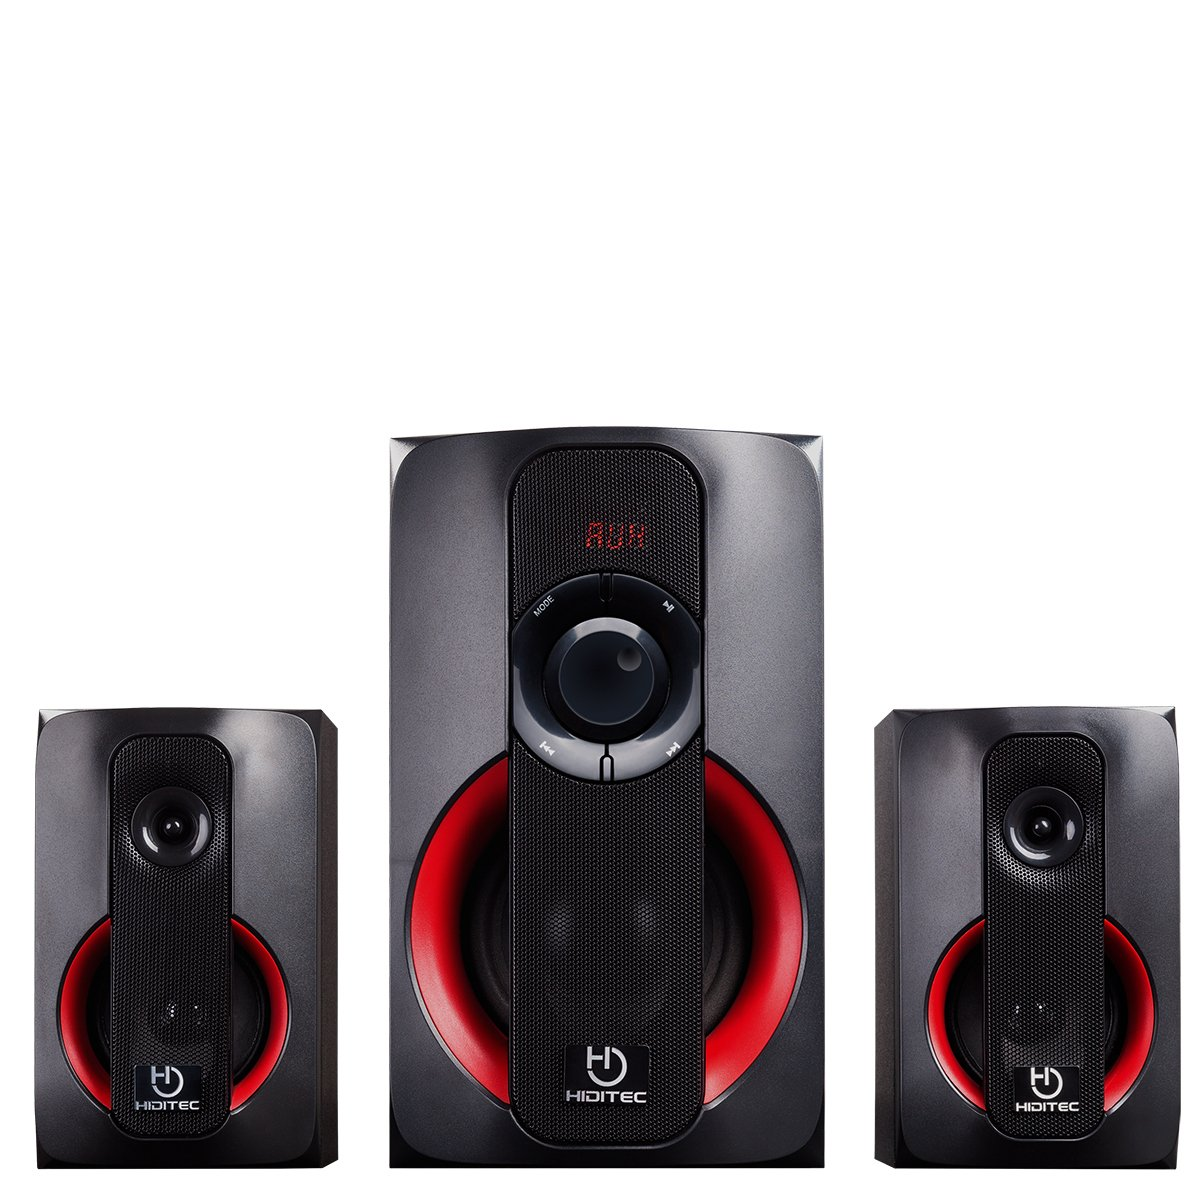 Hiditec - Altavoces H400 - Sistema de sonido 2.1 (Bluetooth 4.1, USB, SD, 40W RMS, Line-In) SPK010000